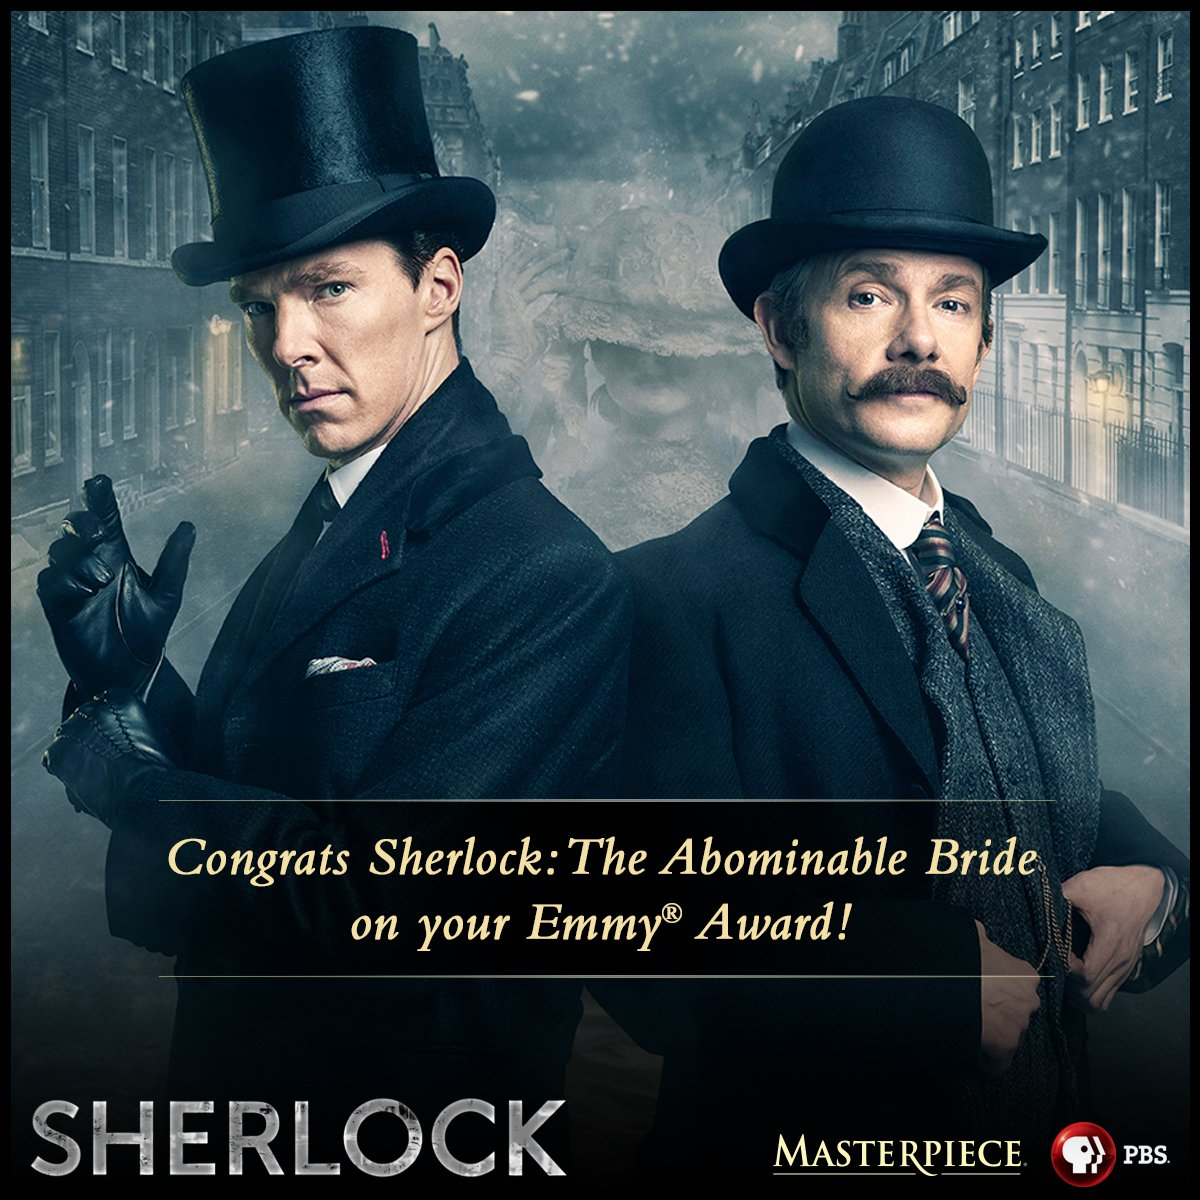 Congratulations #SherlockPBS: The Abominable Bride on your #Emmys win for Outstanding Television Movie! https://t.co/irPEZkG7Kl